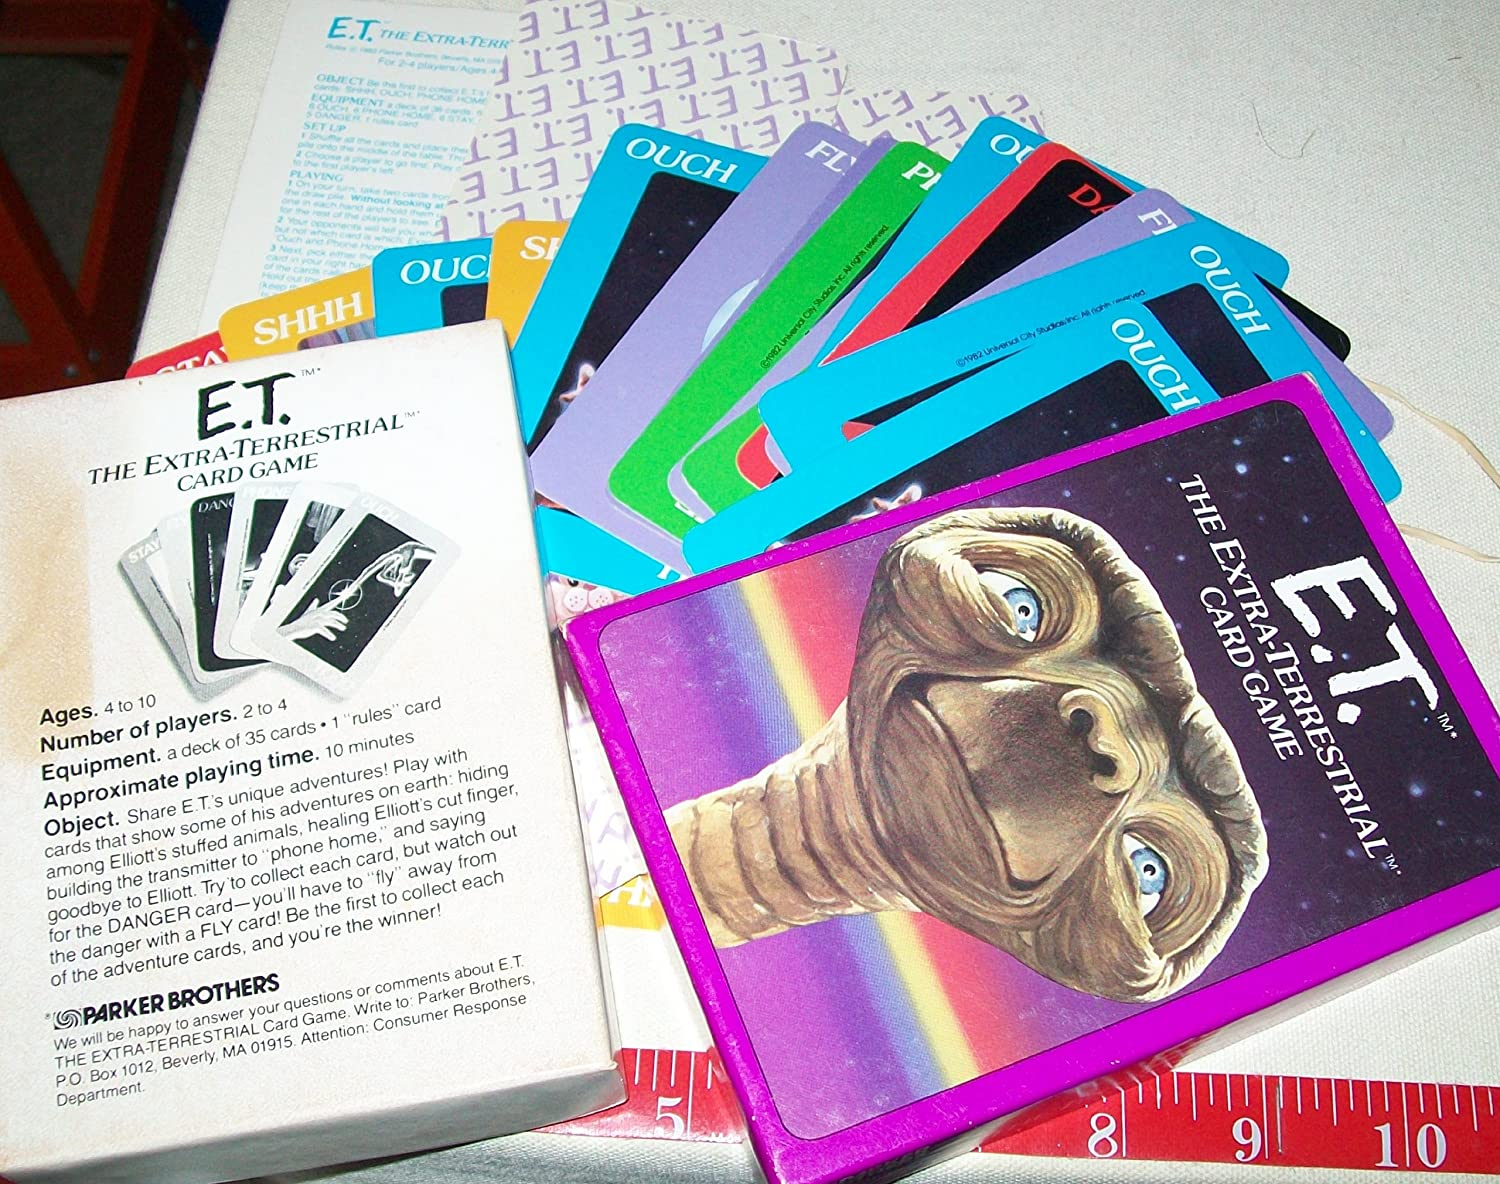 Parker Brothers E.T. the Extraterrestrial Card Game